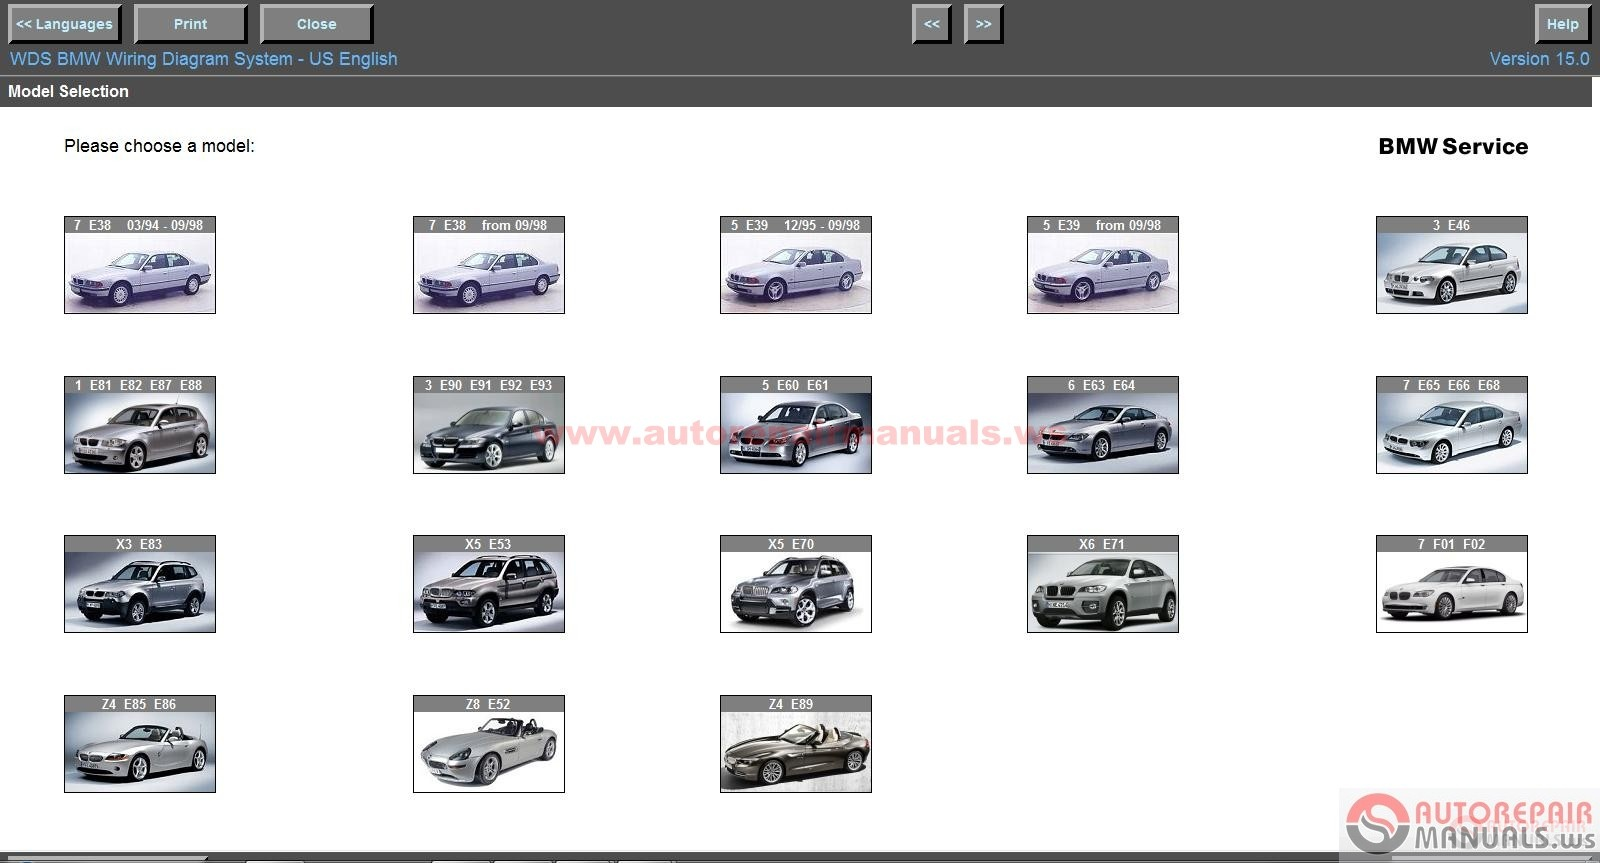 Bmw Wiring Diagram System Download Library Wds V15 And Mini V7 System3 Auto Repair